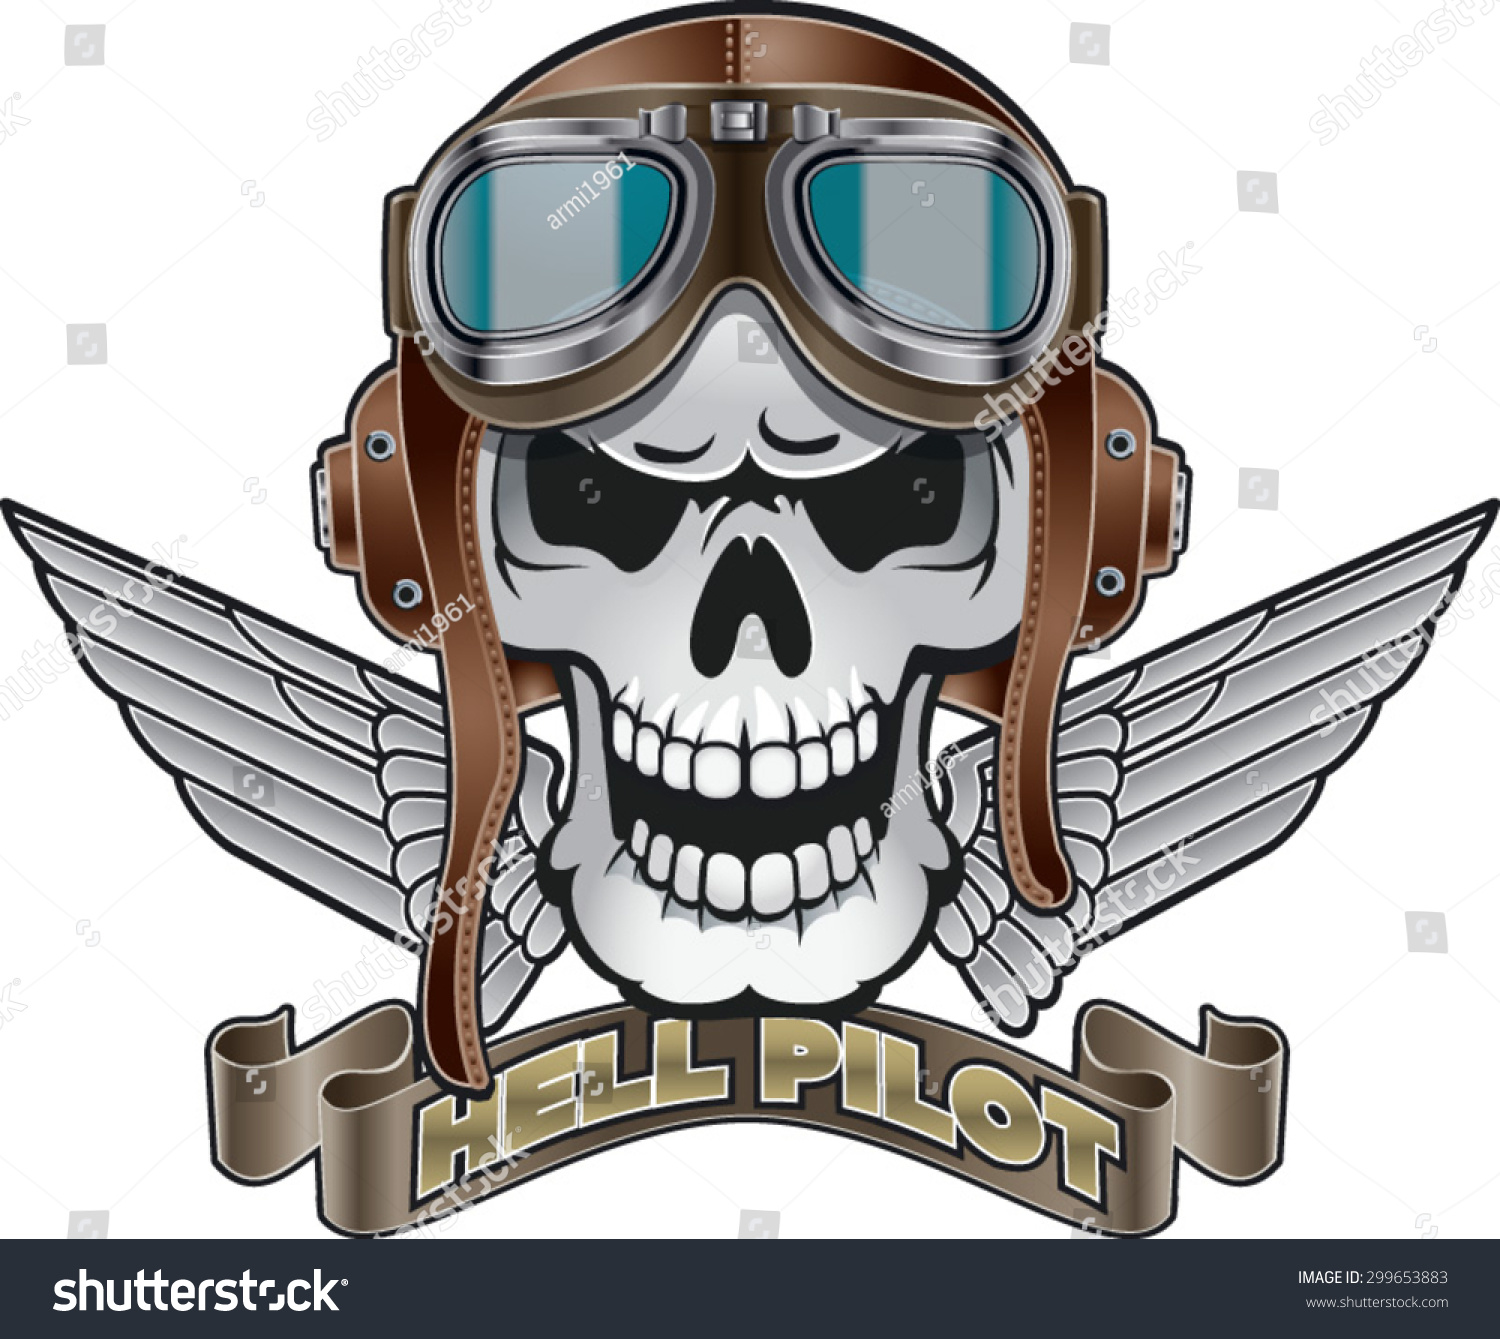 skull pilot helmet wings banner text stock vector 299653883 shutterstock. Black Bedroom Furniture Sets. Home Design Ideas